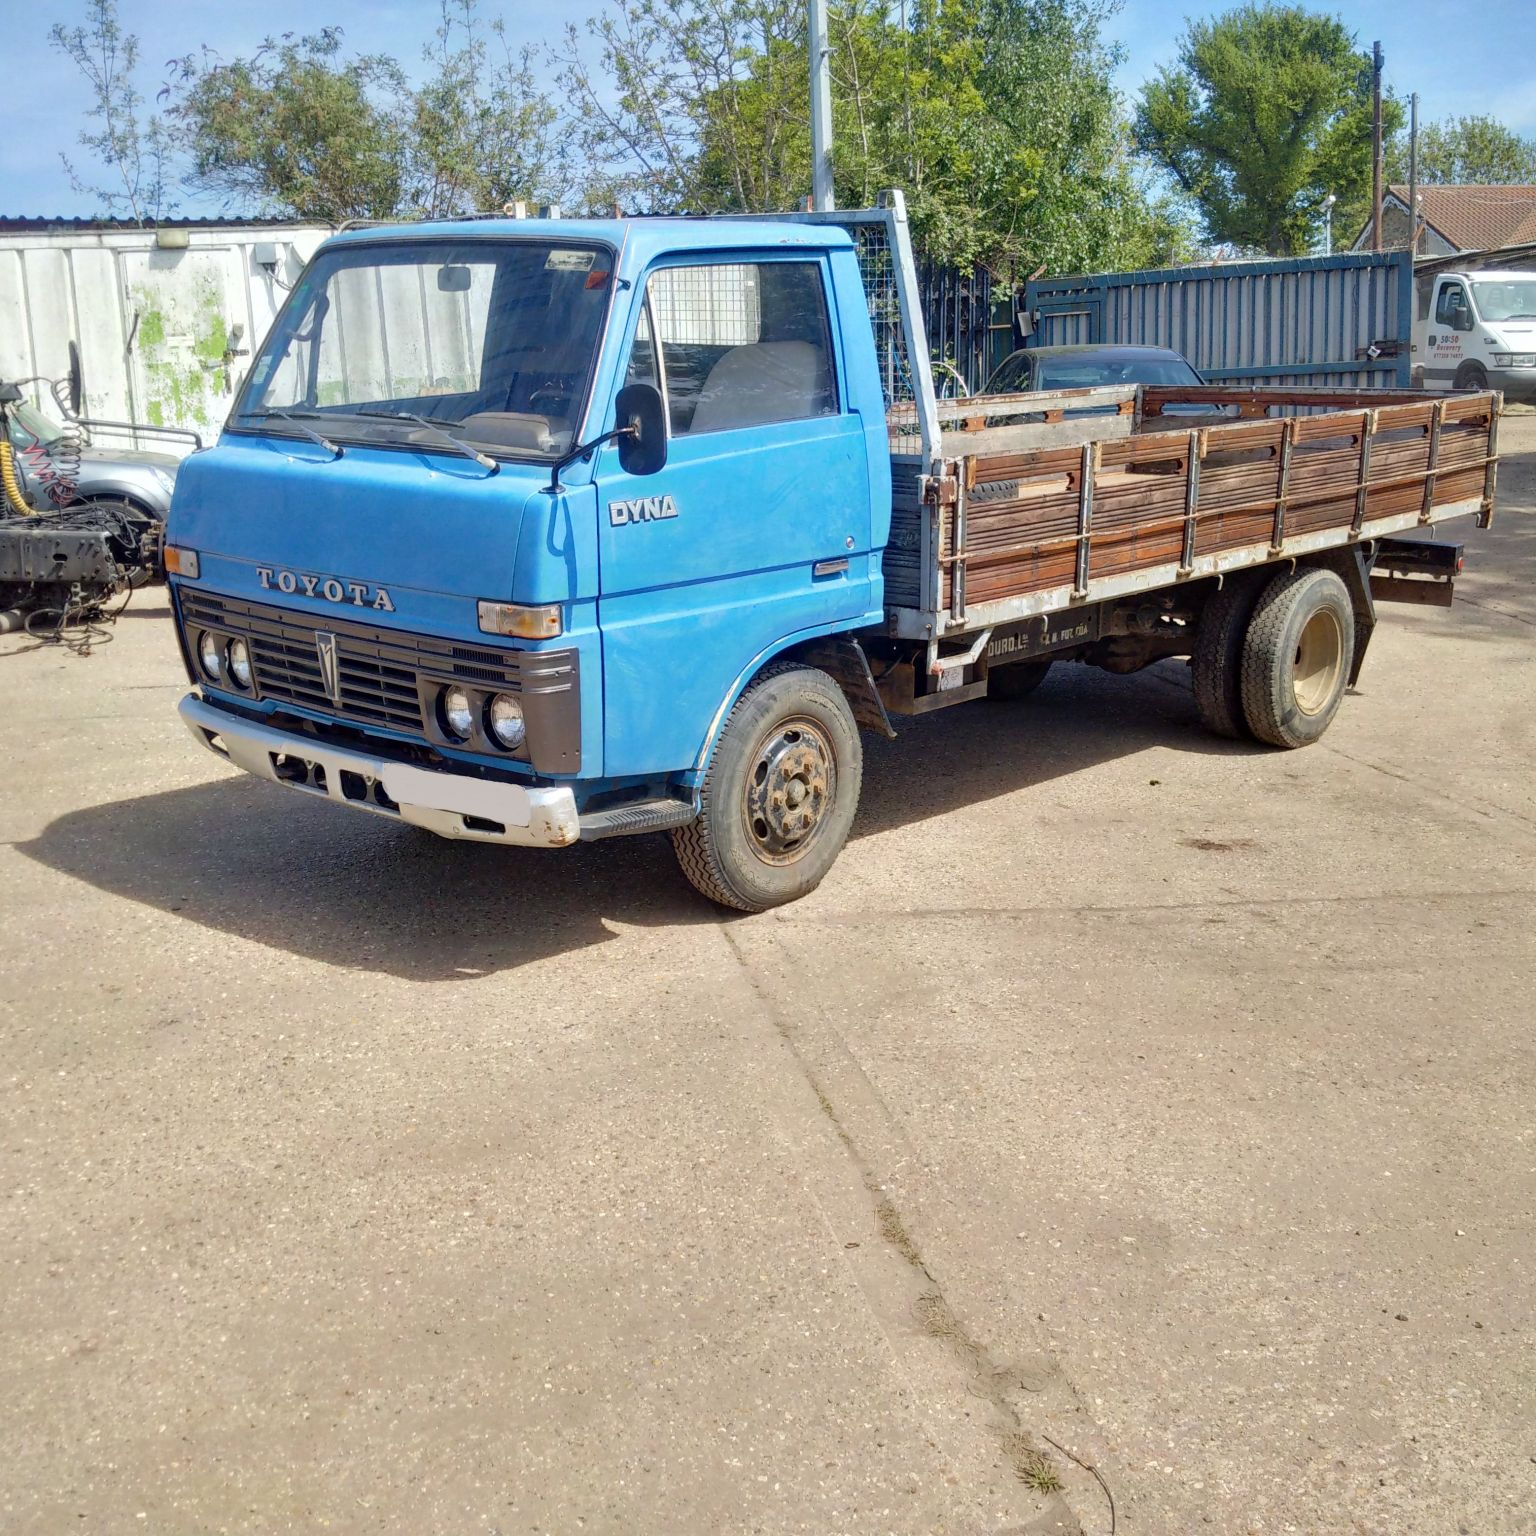 Left hand drive Toyota Dyna 300/BU30 3.0 diesel 6 tyres 3.5 Ton truck. On 6 studs.